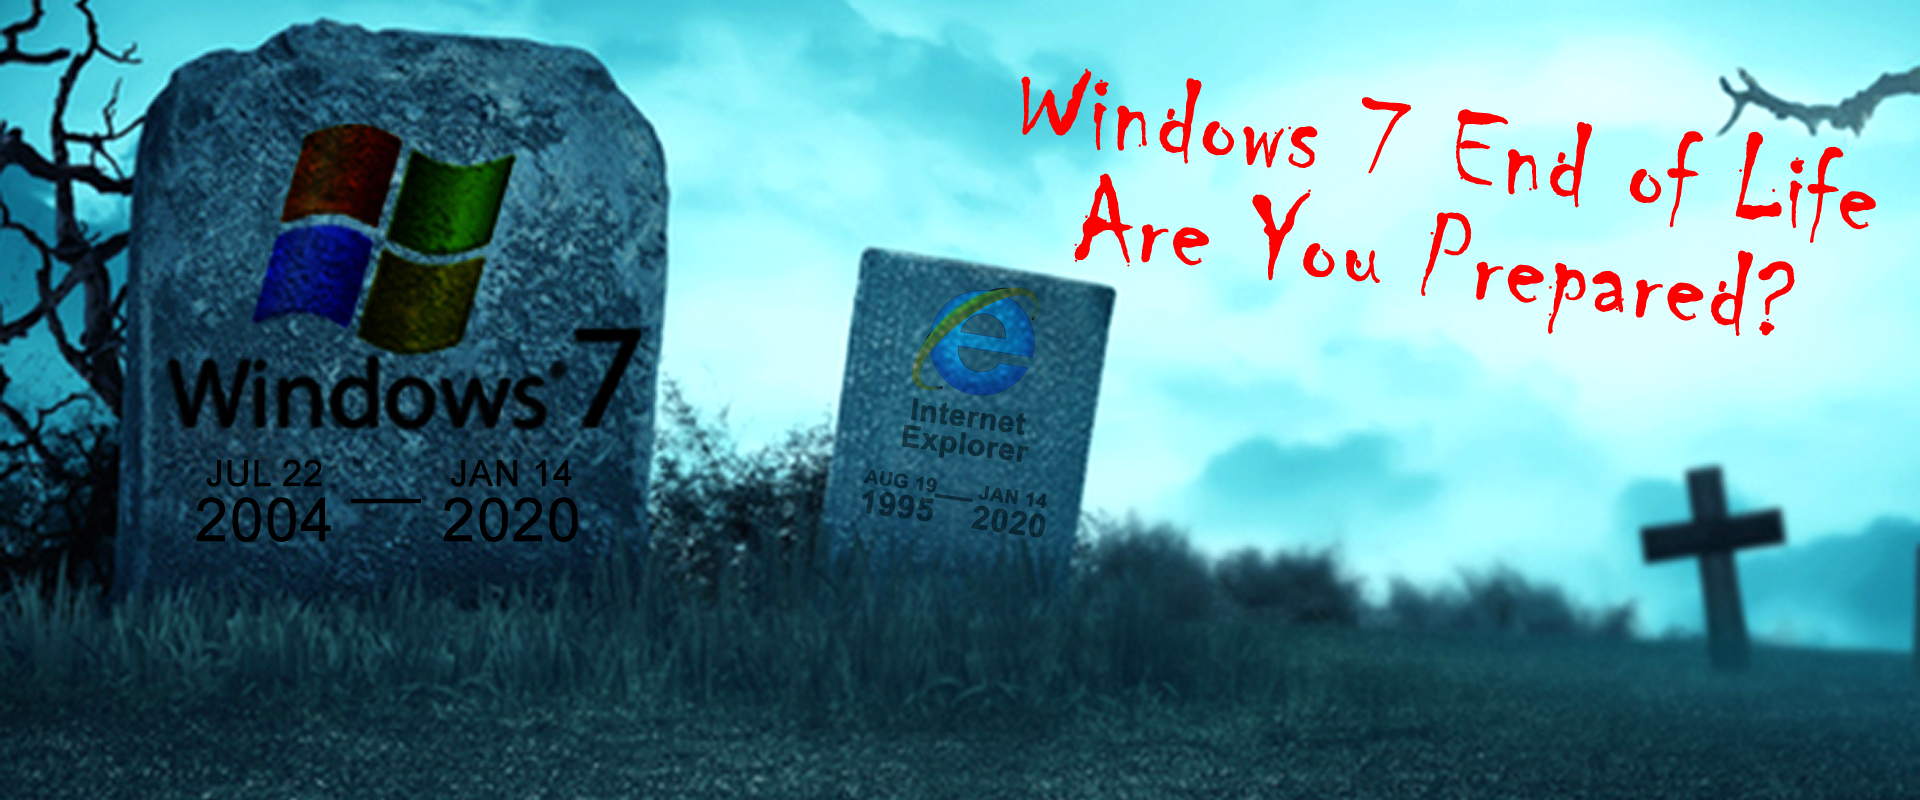 Windows-7-End-of-life-pc-is-out-of-support-removal-rip-win-7